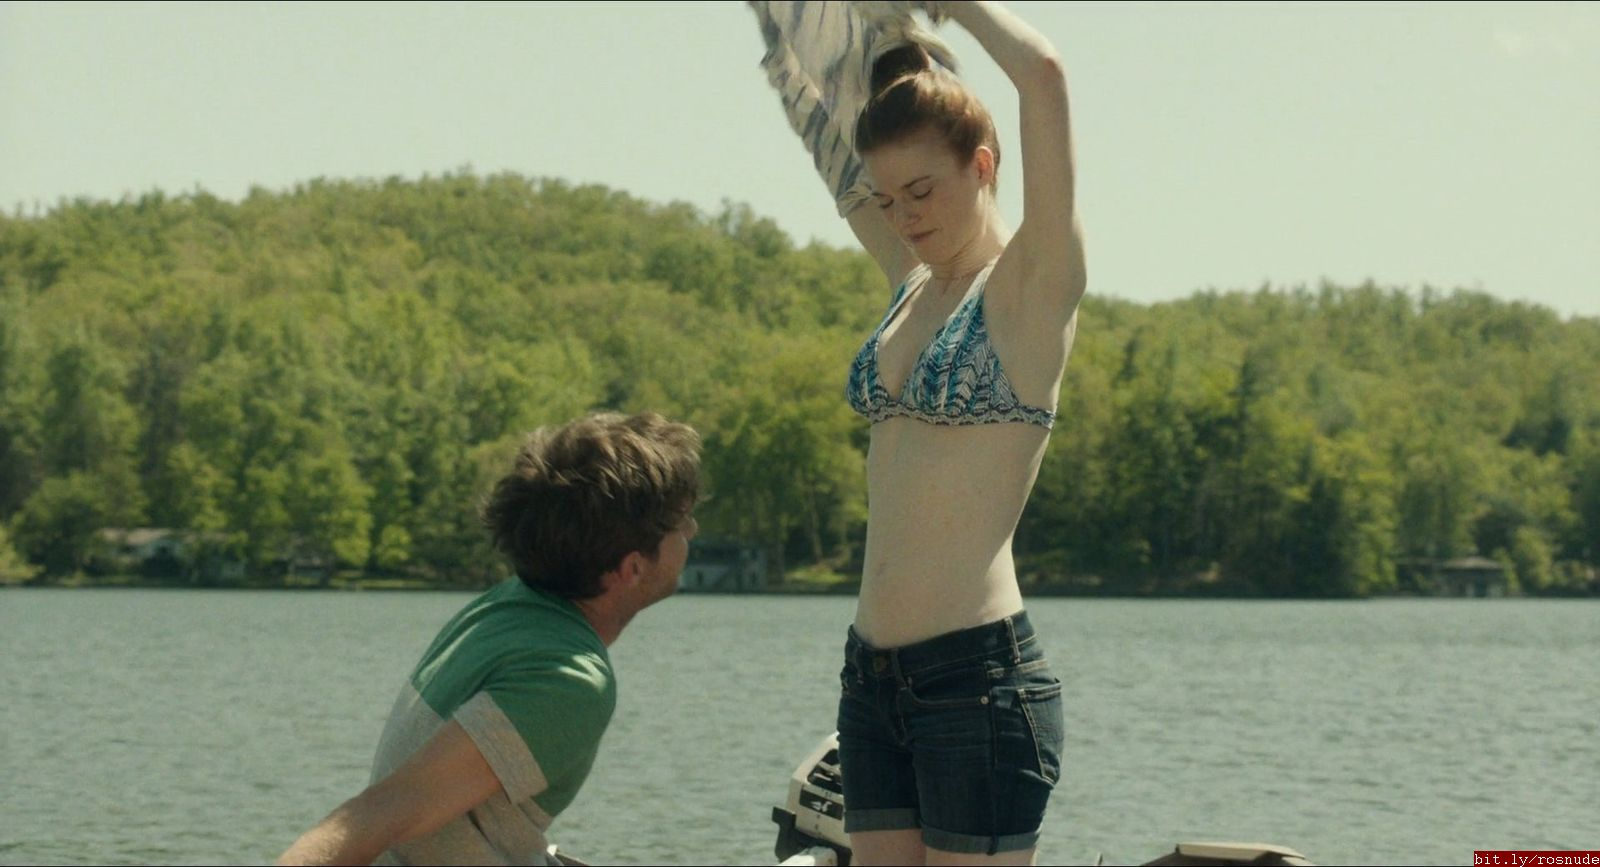 Rose Leslie Nudes from Game of Thrones and More! (27 PICS)